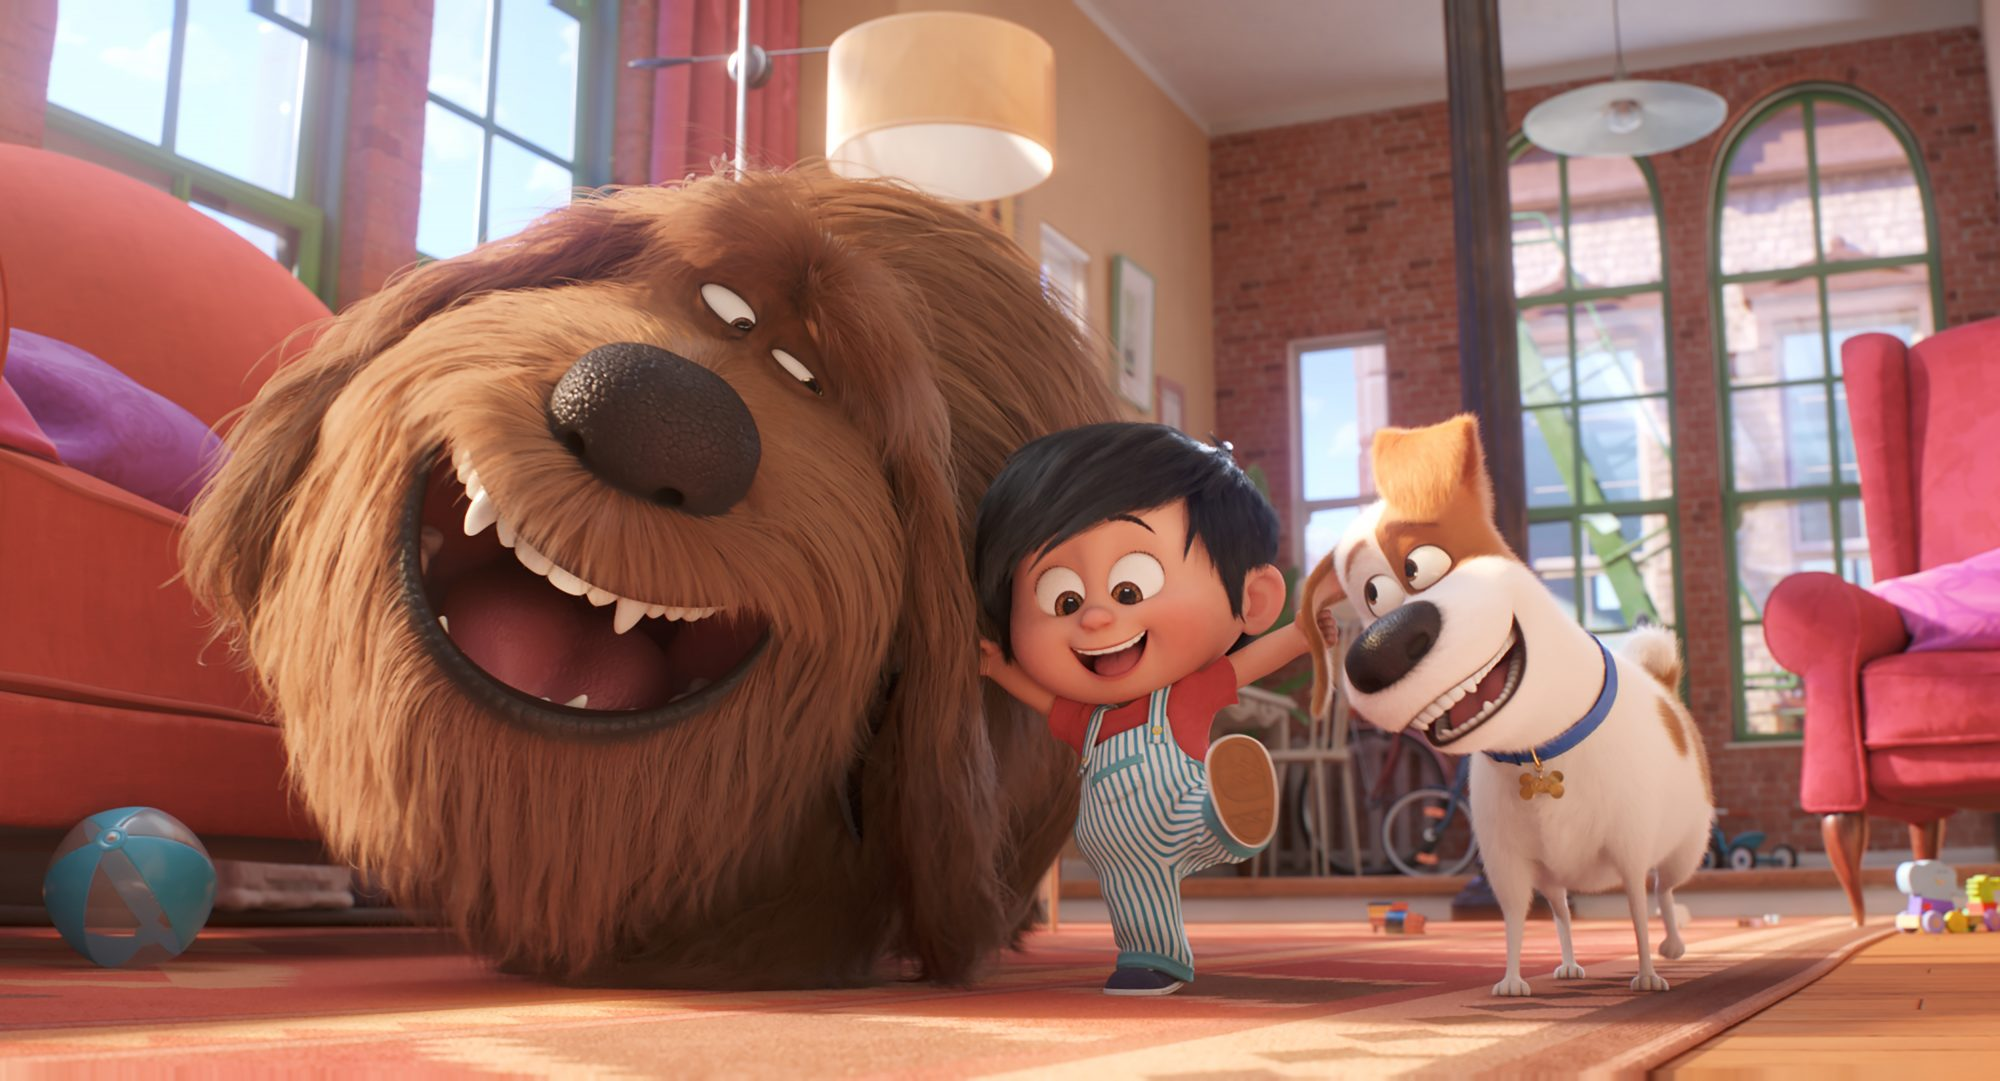 "Duke (Eric Stonestreet), Liam and Max (Patton Oswalt) in Illumination's<a href=""https://entertainment.ie/cinema/movie-reviews/the-secret-life-of-pets-2-393529/"">The Secret Life of Pets 2</a>, directed by Chris Renaud."